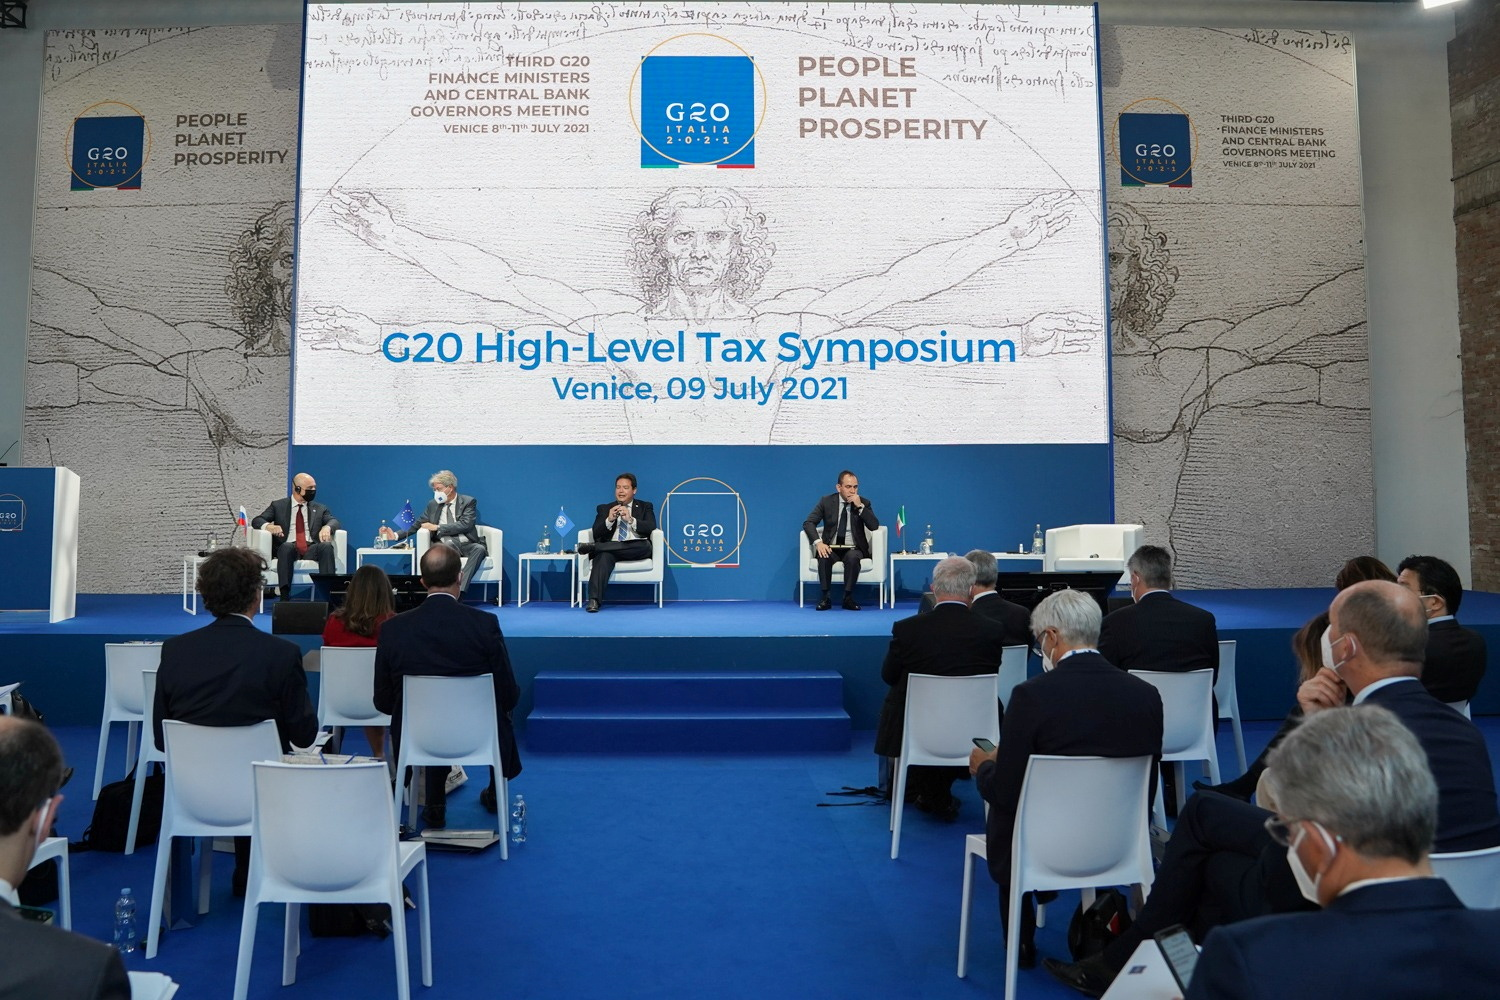 FILE PHOTO: Participants attend the G20 high-level tax symposium during the G20 finance ministers and central bank governors' meeting in Venice, Italy, July 9, 2021. G20 Italy/Handout via REUTERS